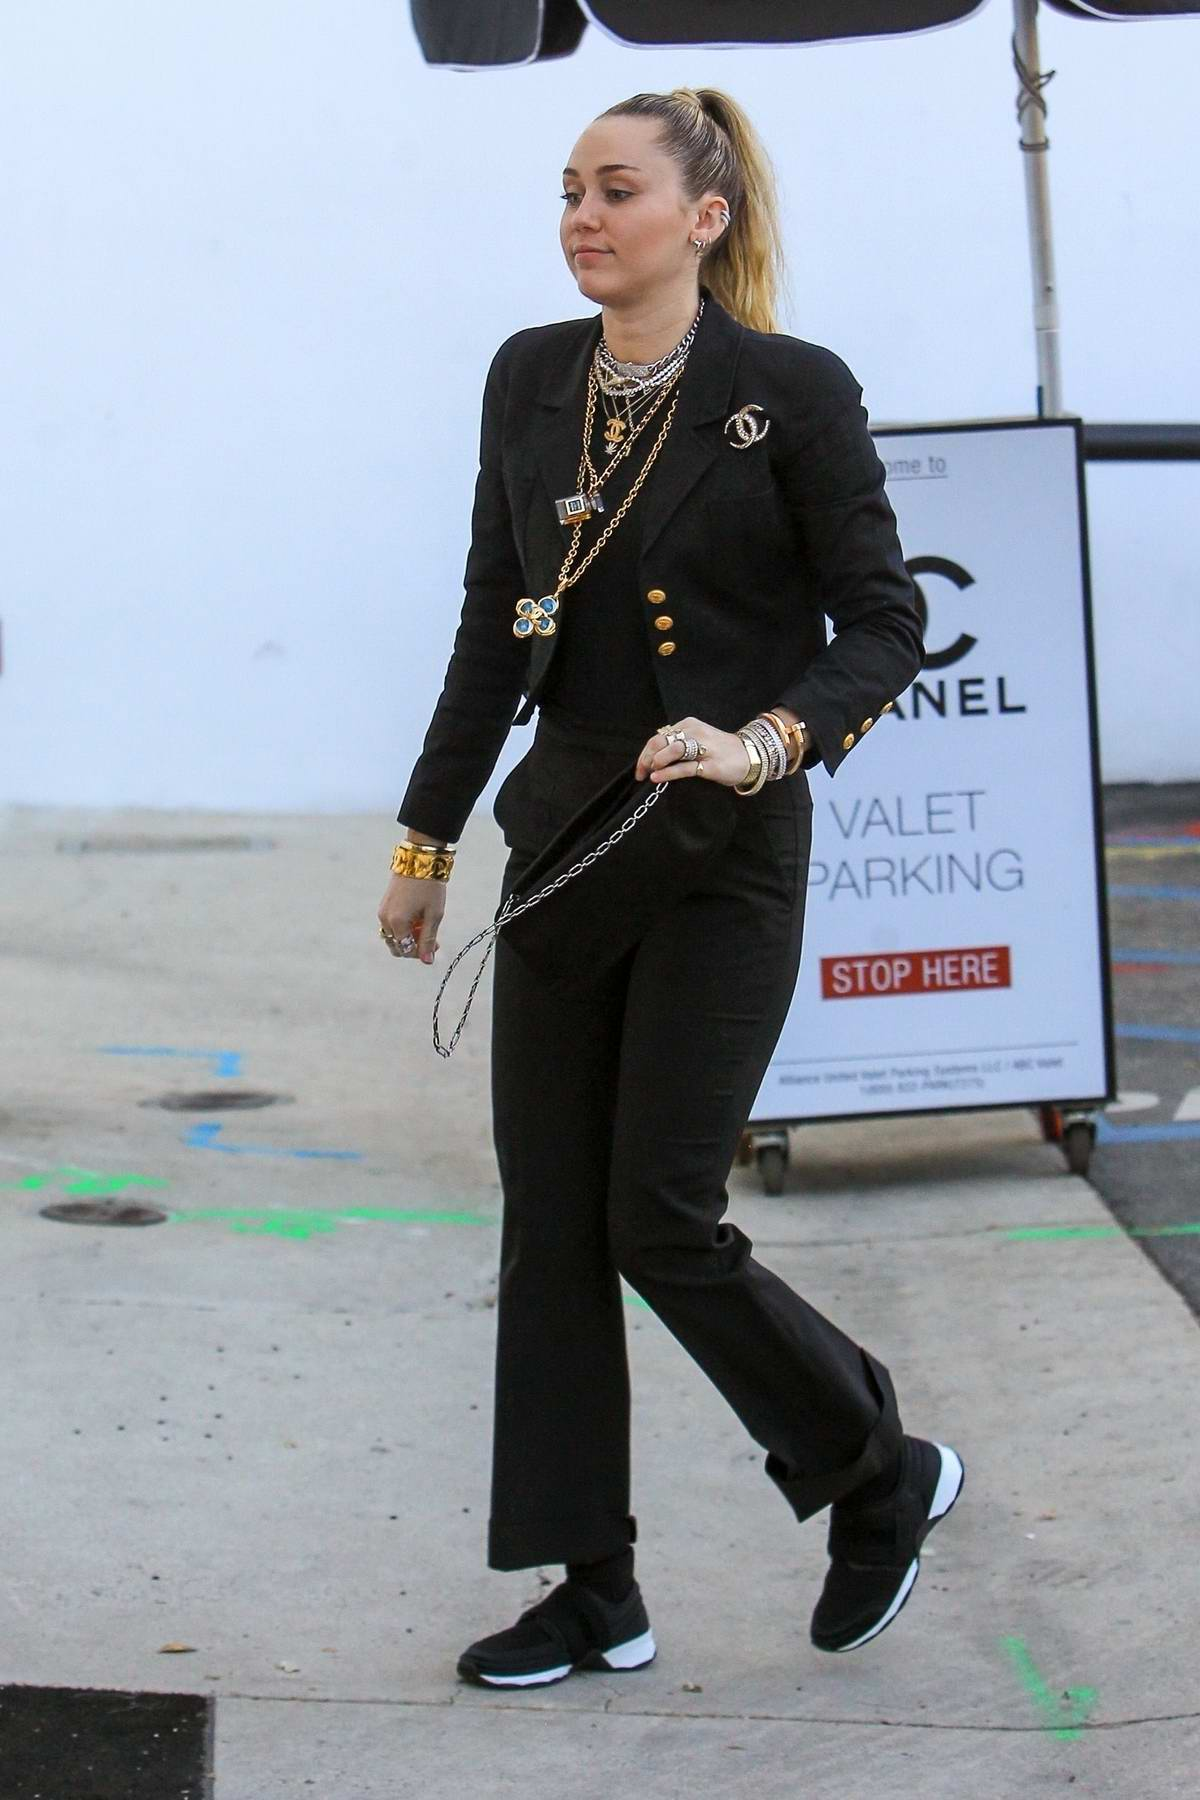 Miley Cyrus wears a Chanel suit and poses with a fan before heading into a Chanel Store in Beverly Hills, Los Angeles